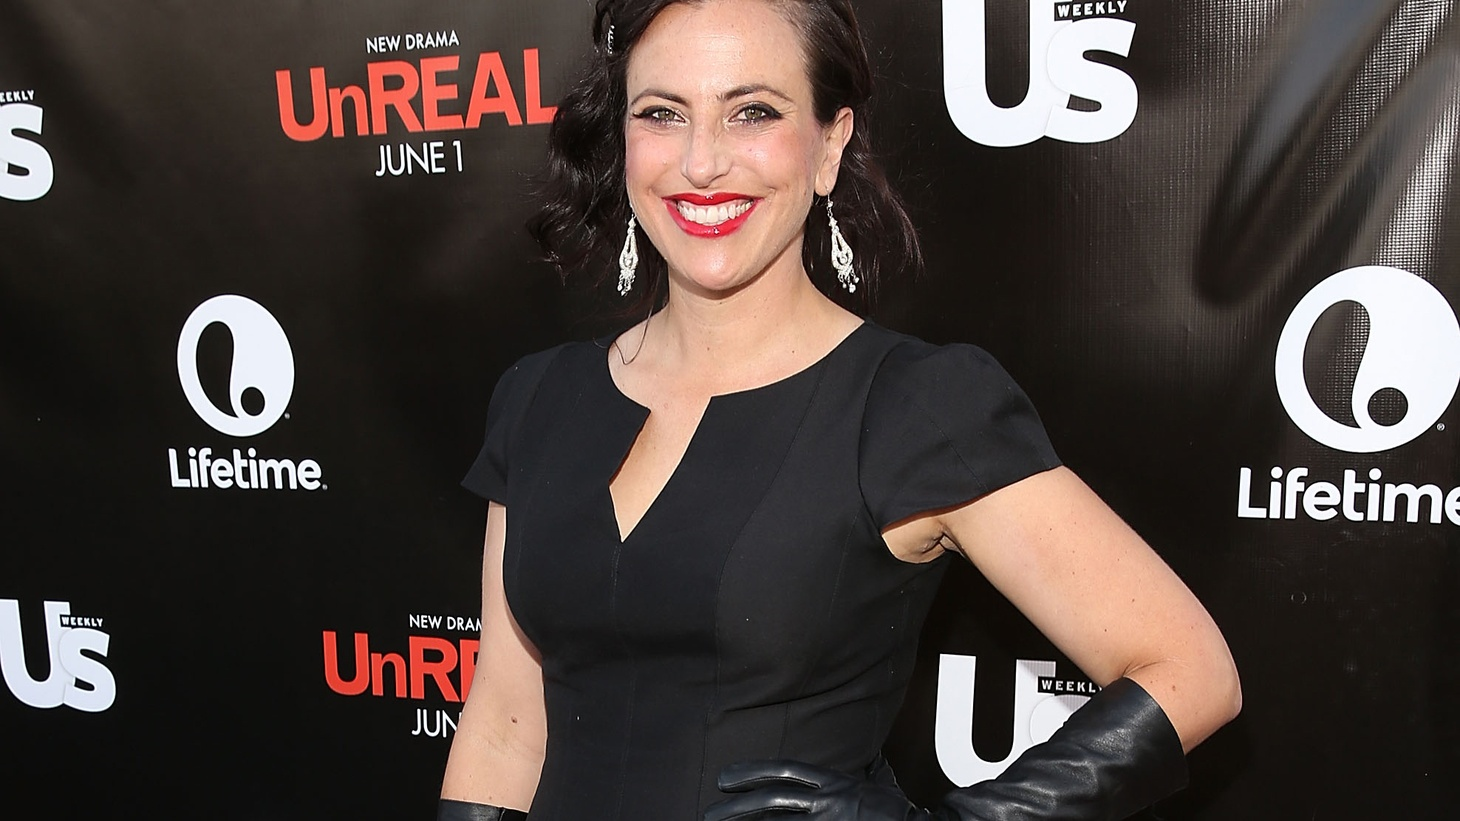 The dramedy UnREAL, now in its second season, is a major departure from the typical Lifetime fare. The series co-creator Sarah Gertrude Shapiro tells us how her past experience working on The Bachelor led to the creation of a show all about the behind-the-scenes machinations of a reality TV producer.